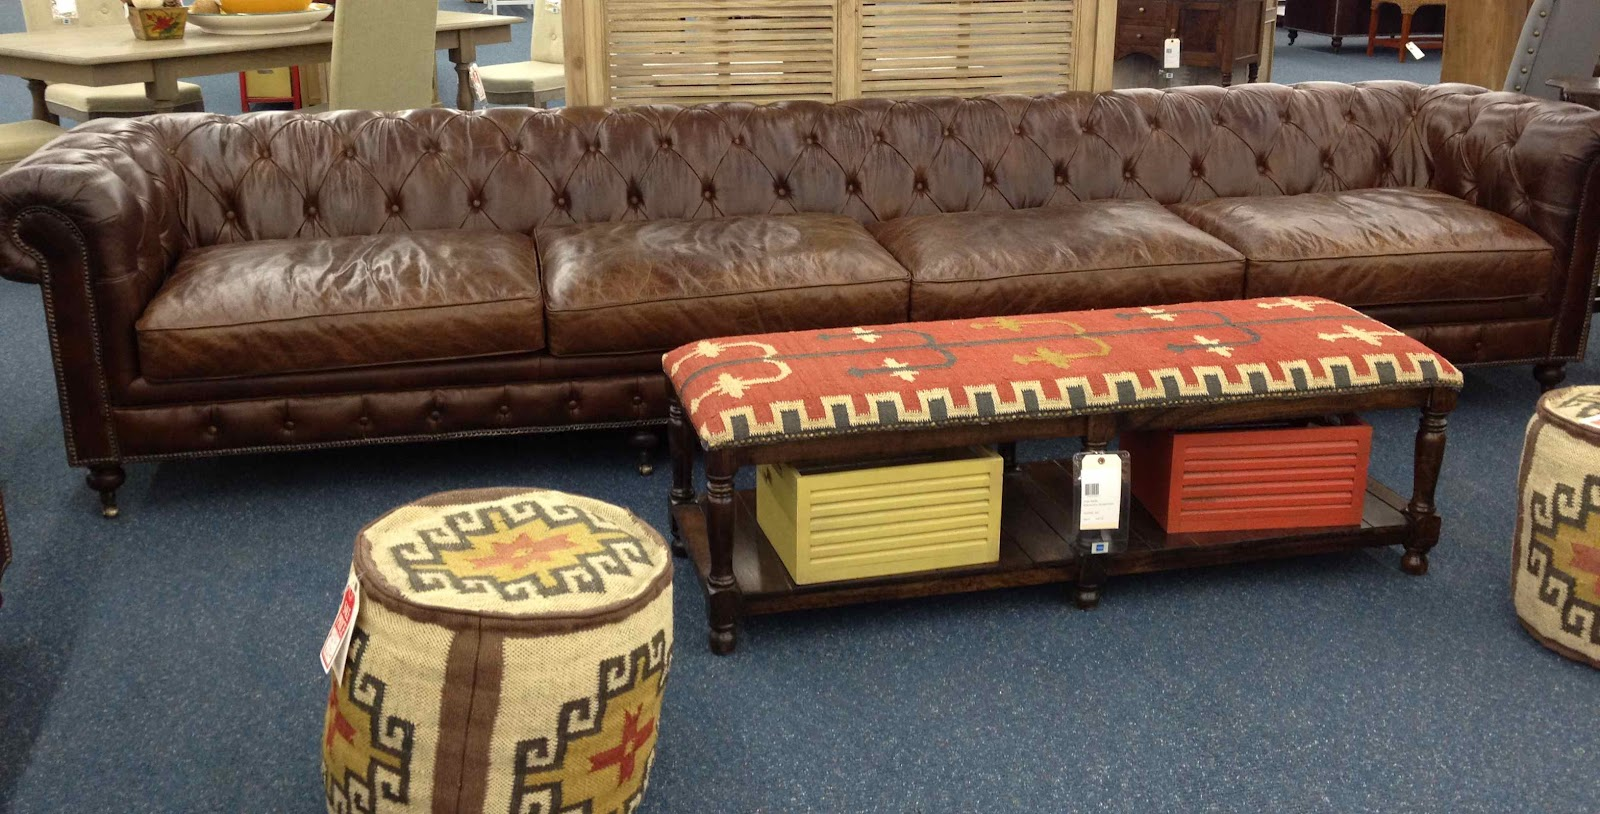 Leather Couch Restoration New Home Emporium Furniture Finds Driven By Decor